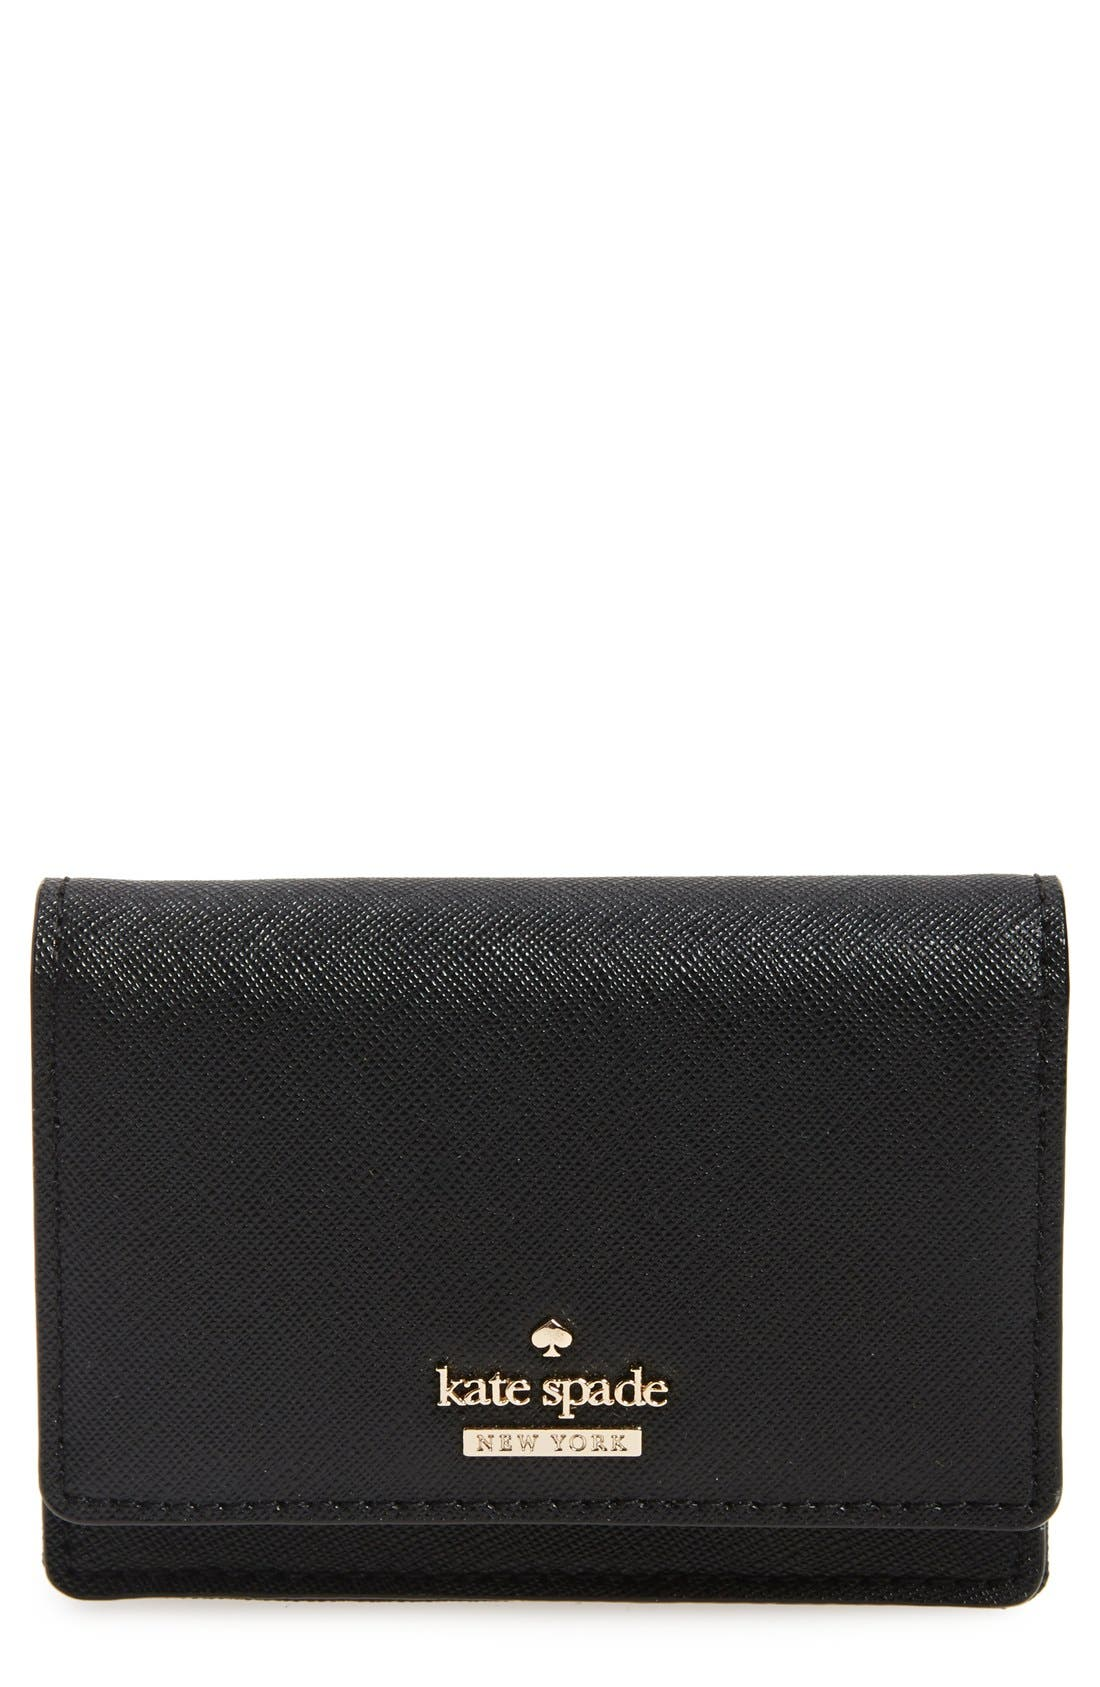 KATE SPADE NEW YORK,                             'cameron street - beca' textured leather wallet,                             Main thumbnail 1, color,                             001